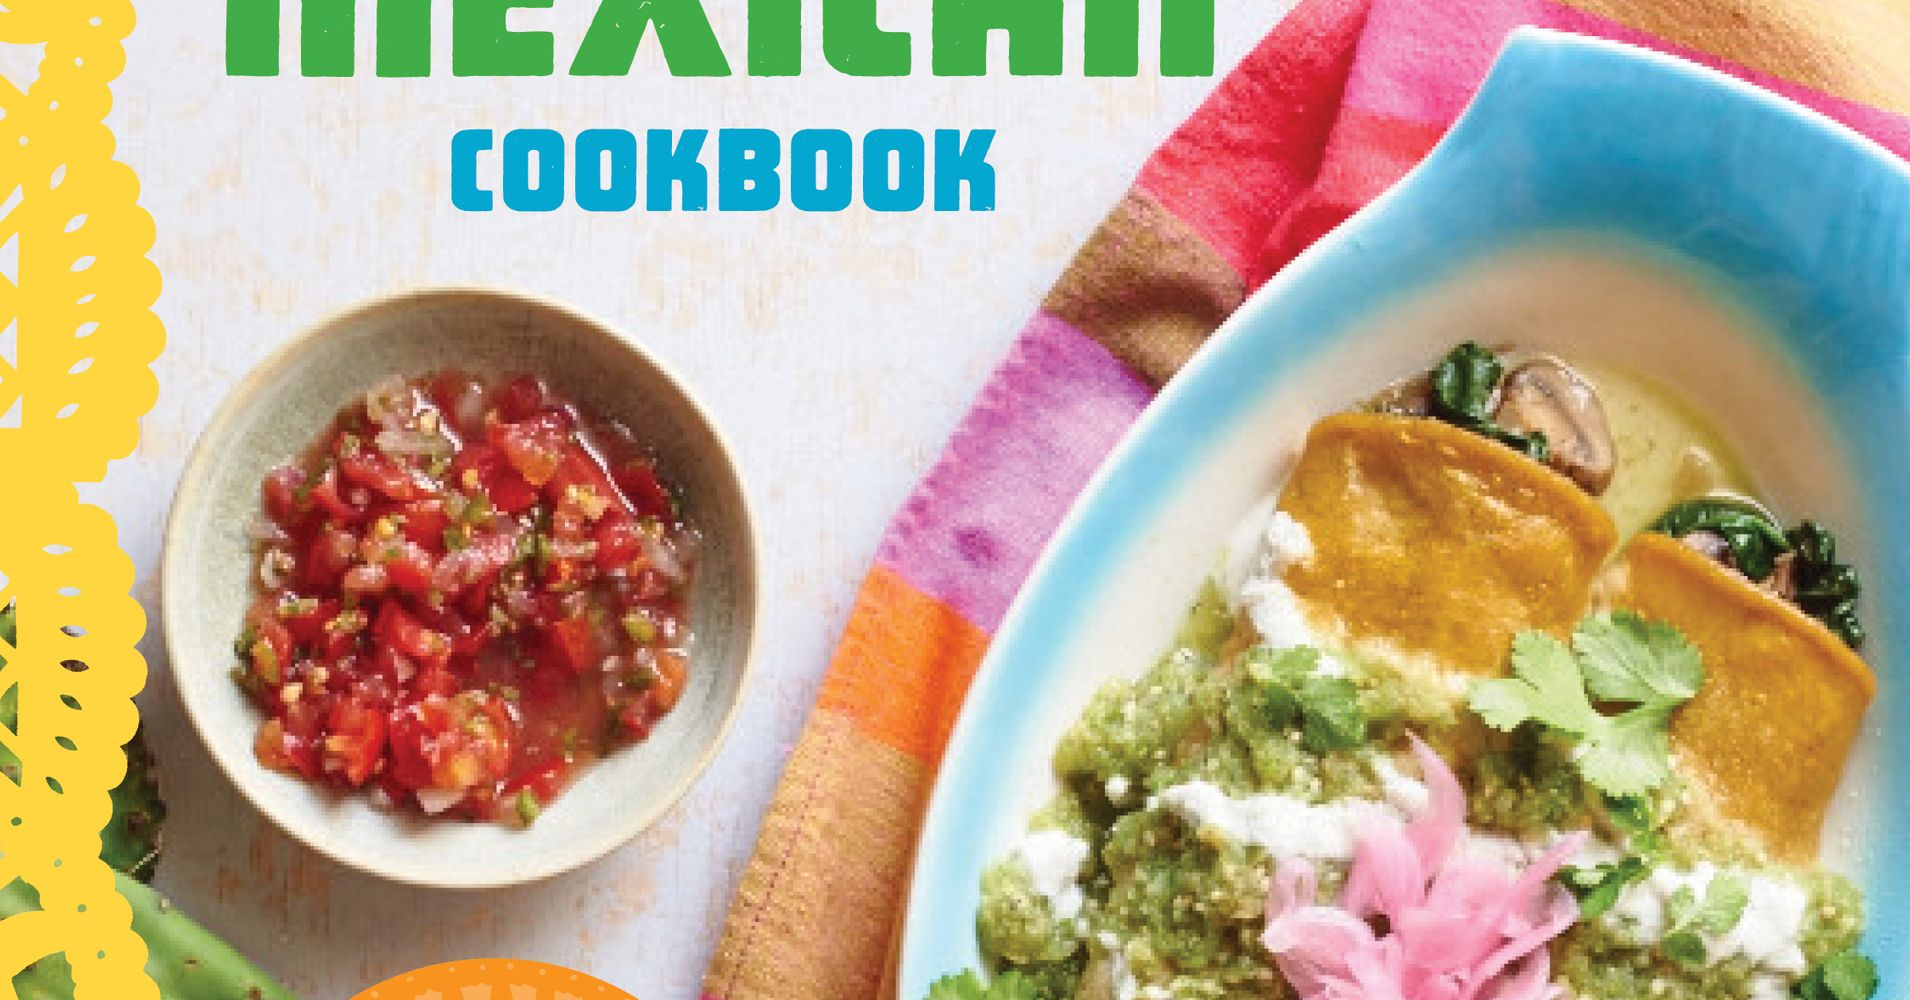 salud vegan mexican cookbook 150 mouthwatering recipes from tamales to churros